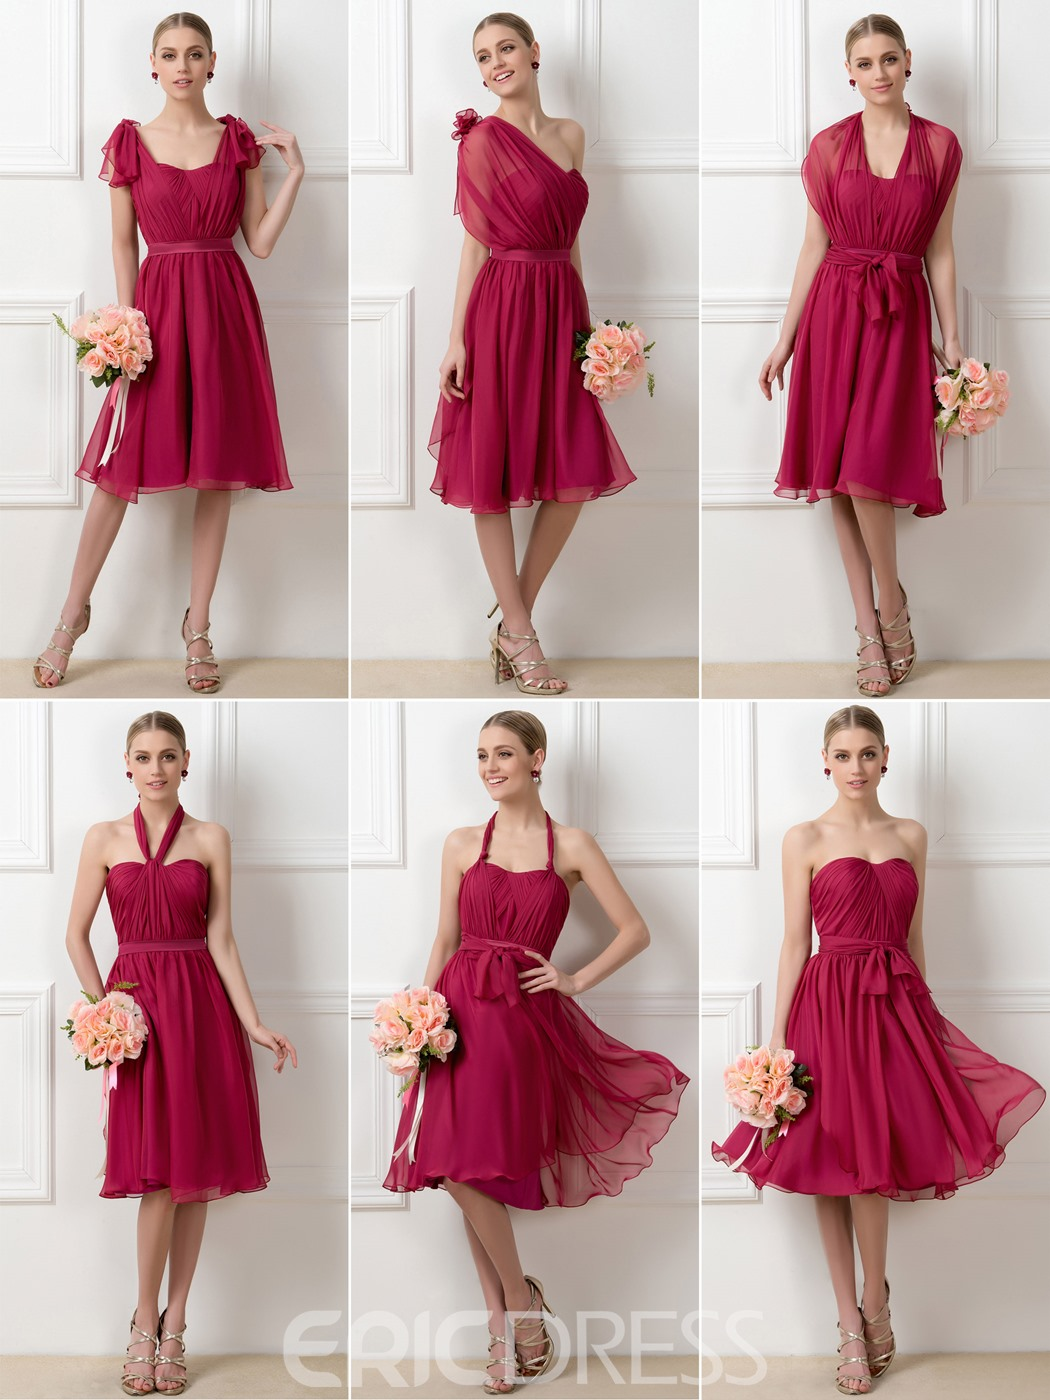 Bridesmaid dresses 2015 cheap bridesmaids dresses for sale ericdress stylish a line tea length convertible bridesmaid dress ombrellifo Image collections